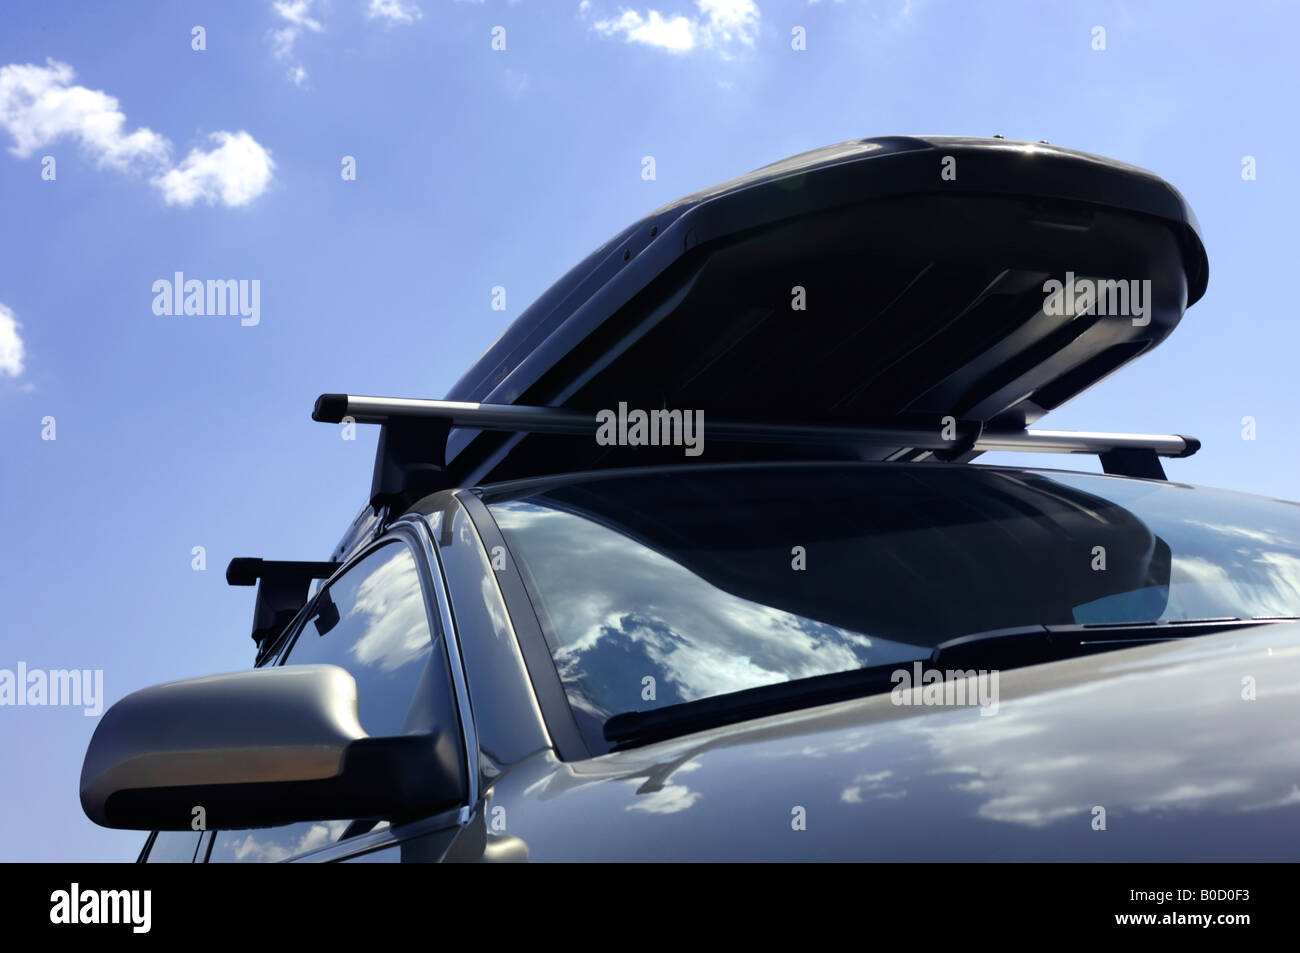 Car with a luggage box - Stock Image